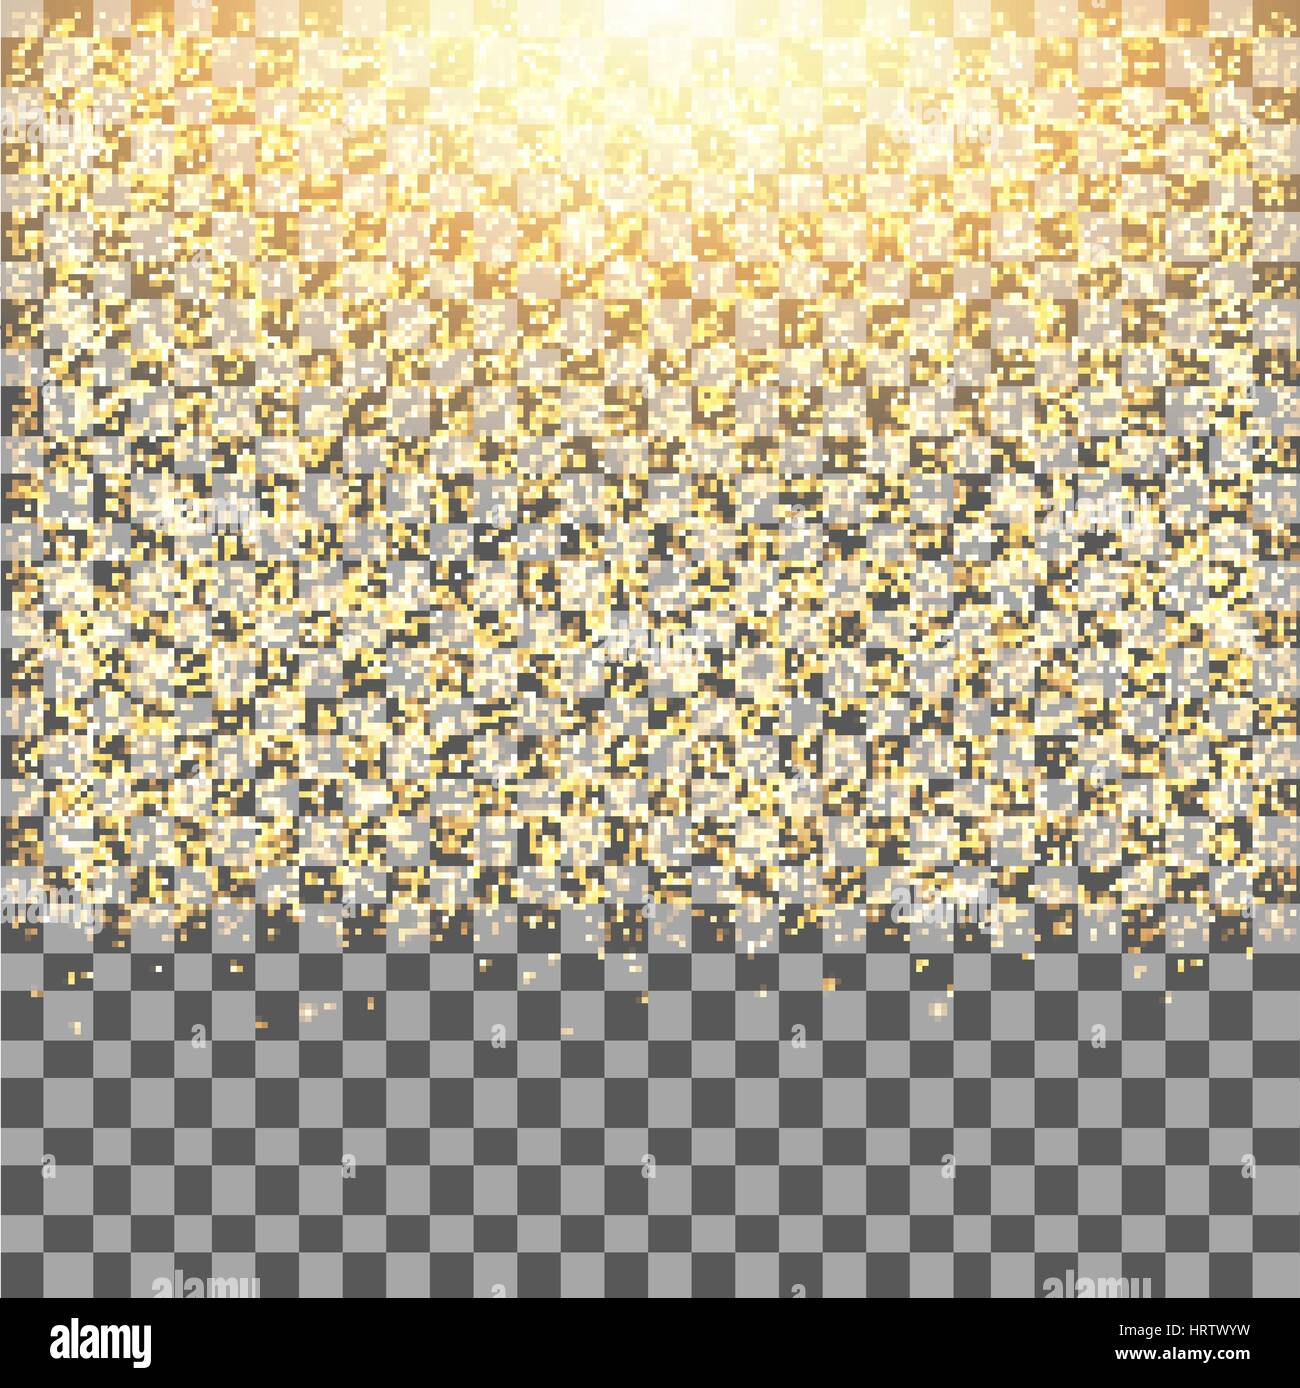 Gold glow glitter sparkles on transparent background.Falling dust. Vector illustration. - Stock Vector